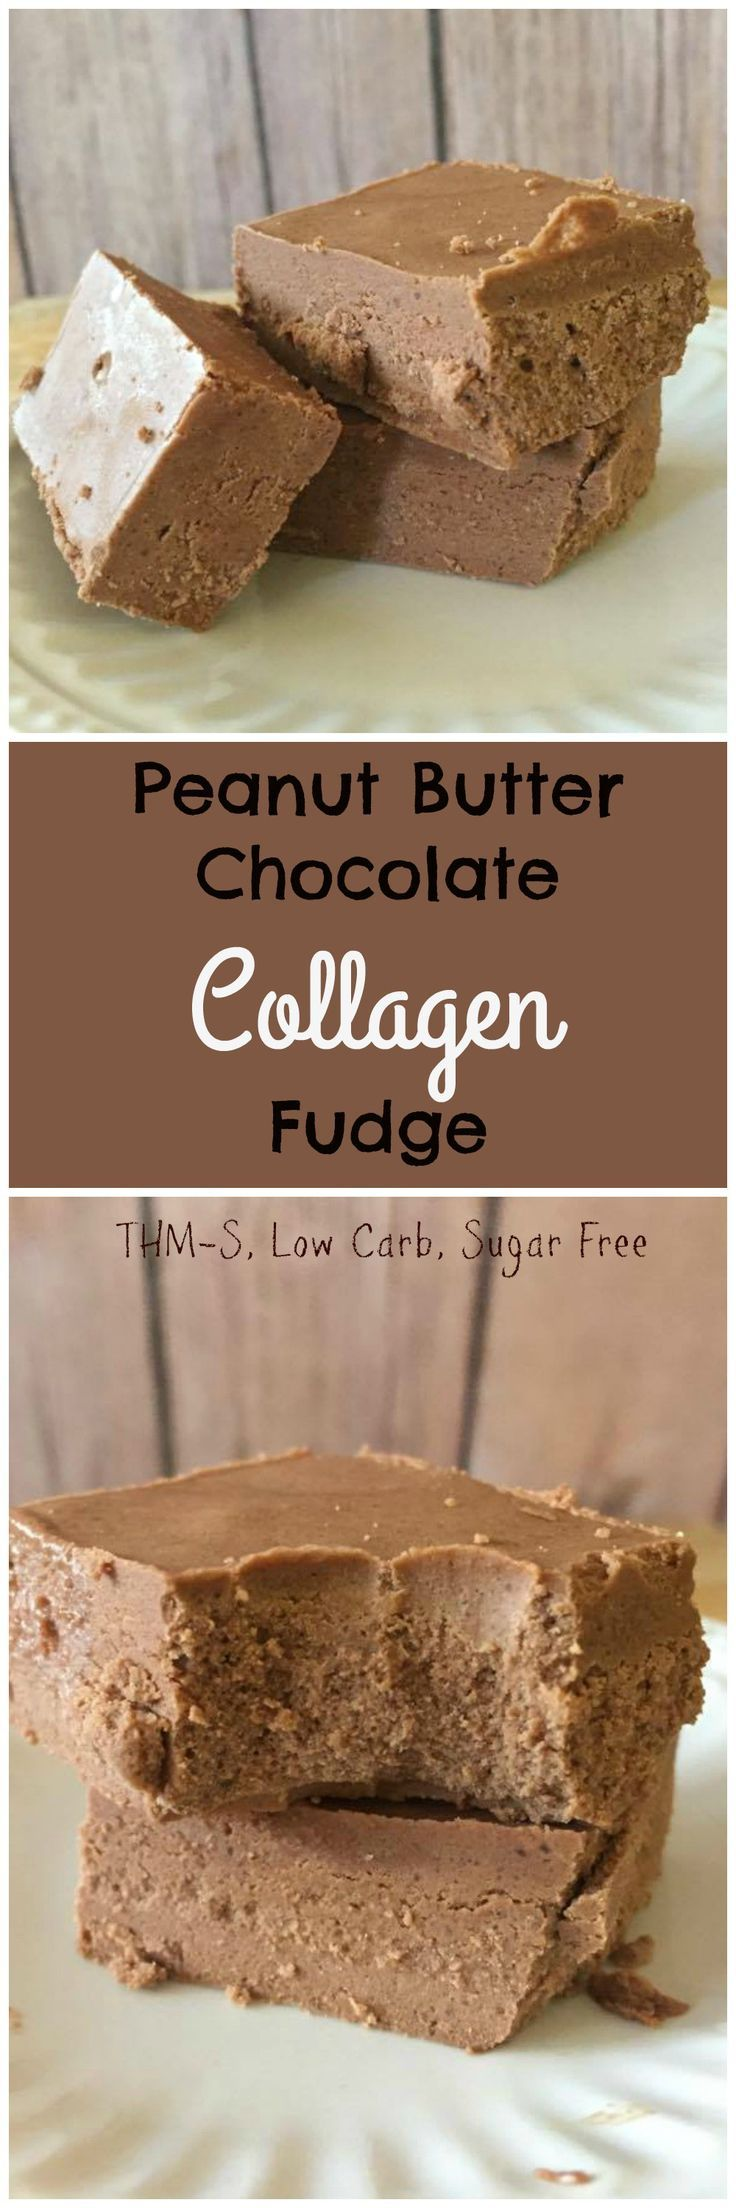 Low Carb, Sugar Free Peanut Butter Chocolate Collagen Fudge - THM-S